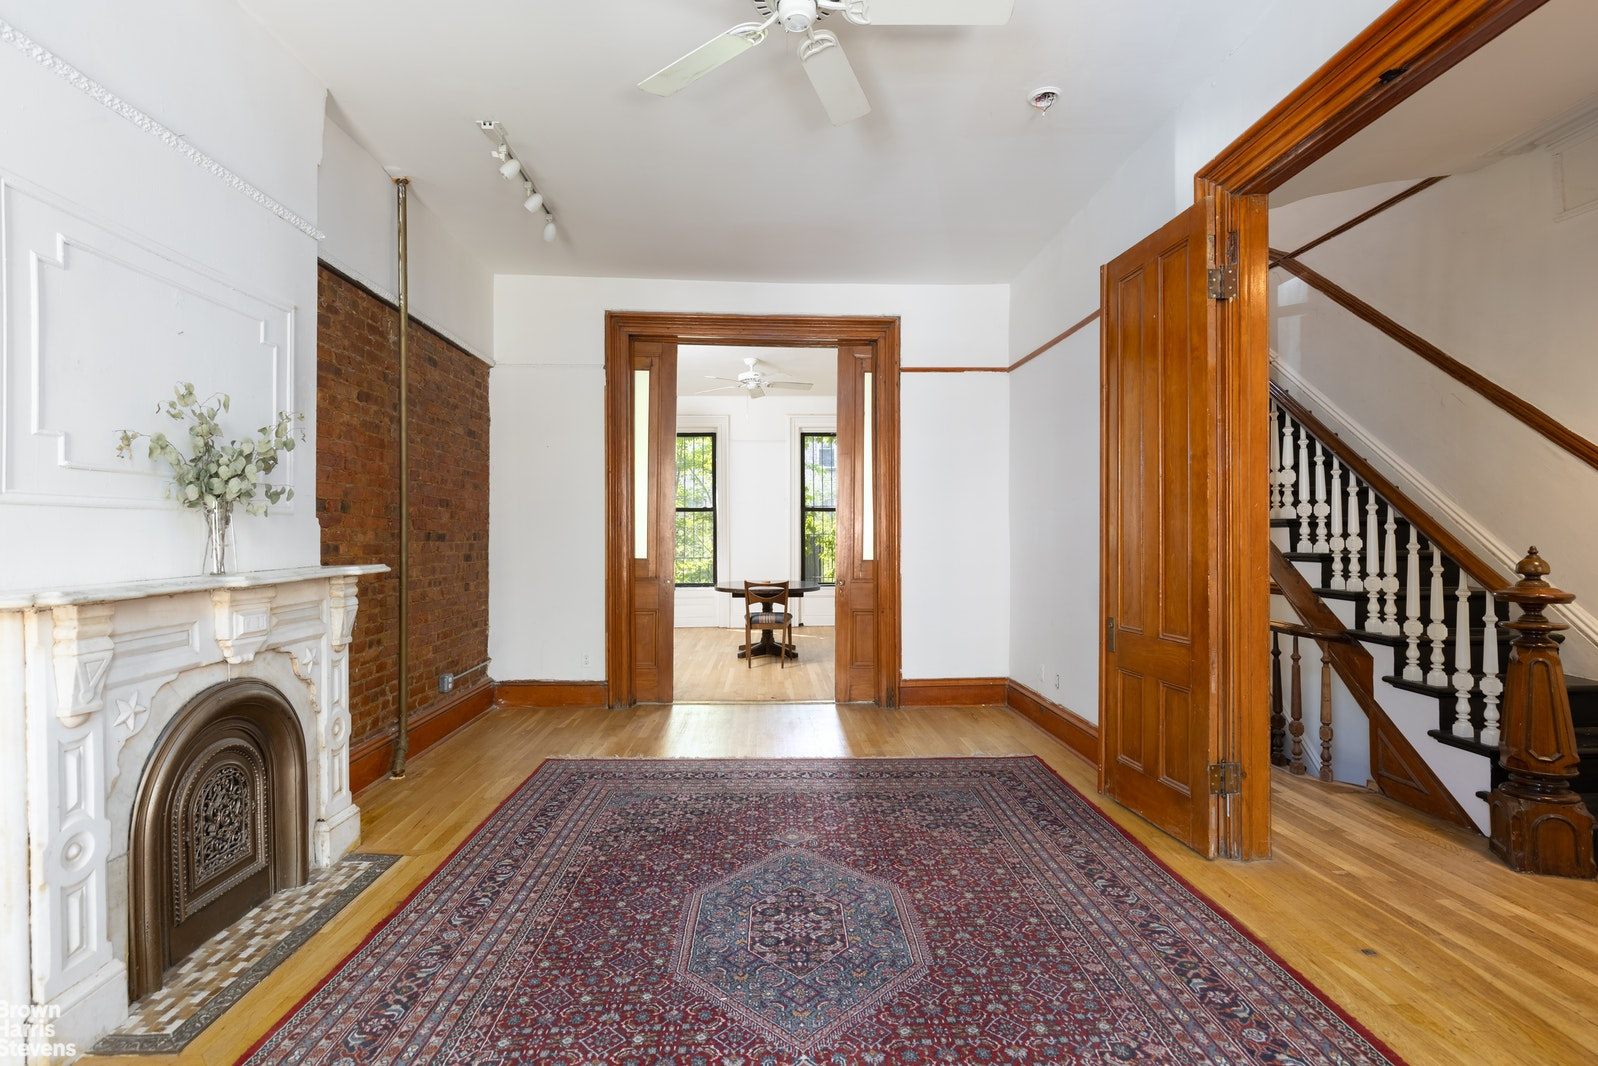 410 Macon Street, Bedford Stuyvesant, Brooklyn, NY, 11233, $2,350,000, Property For Sale, Halstead Real Estate, Photo 6